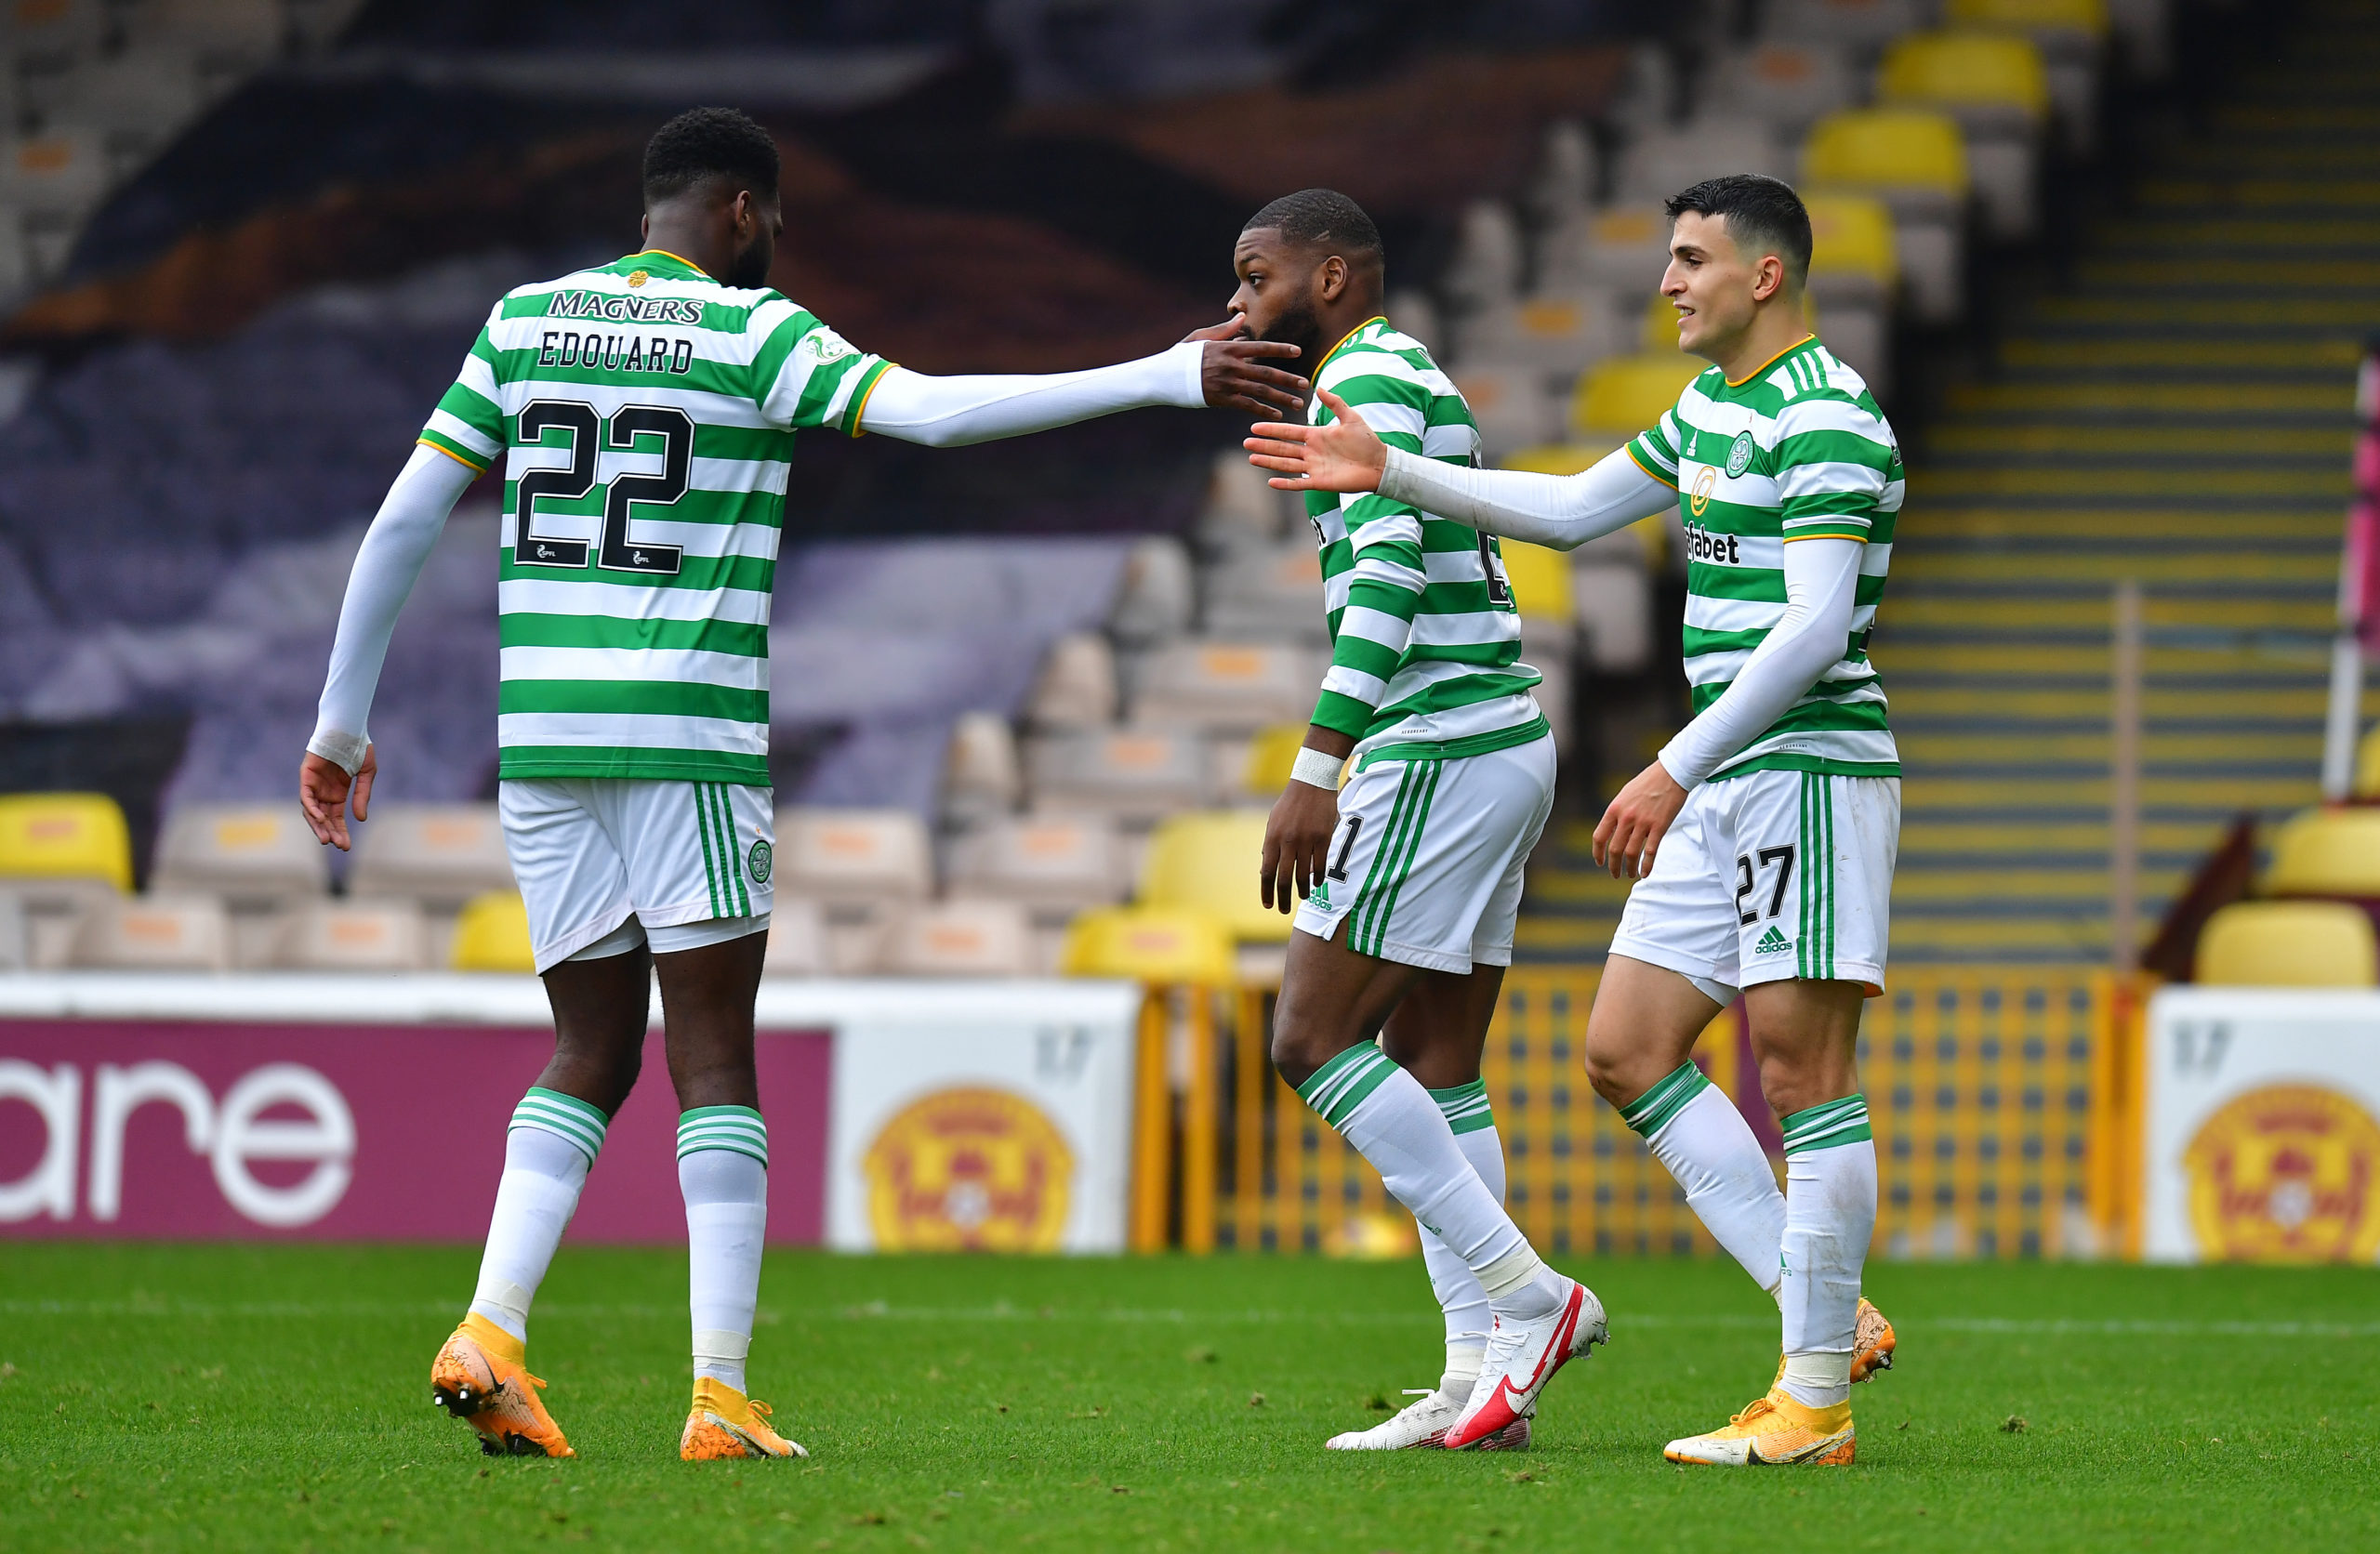 Celtic brought on Odsonne Edouard and Olivier Ntchm at Fir Park